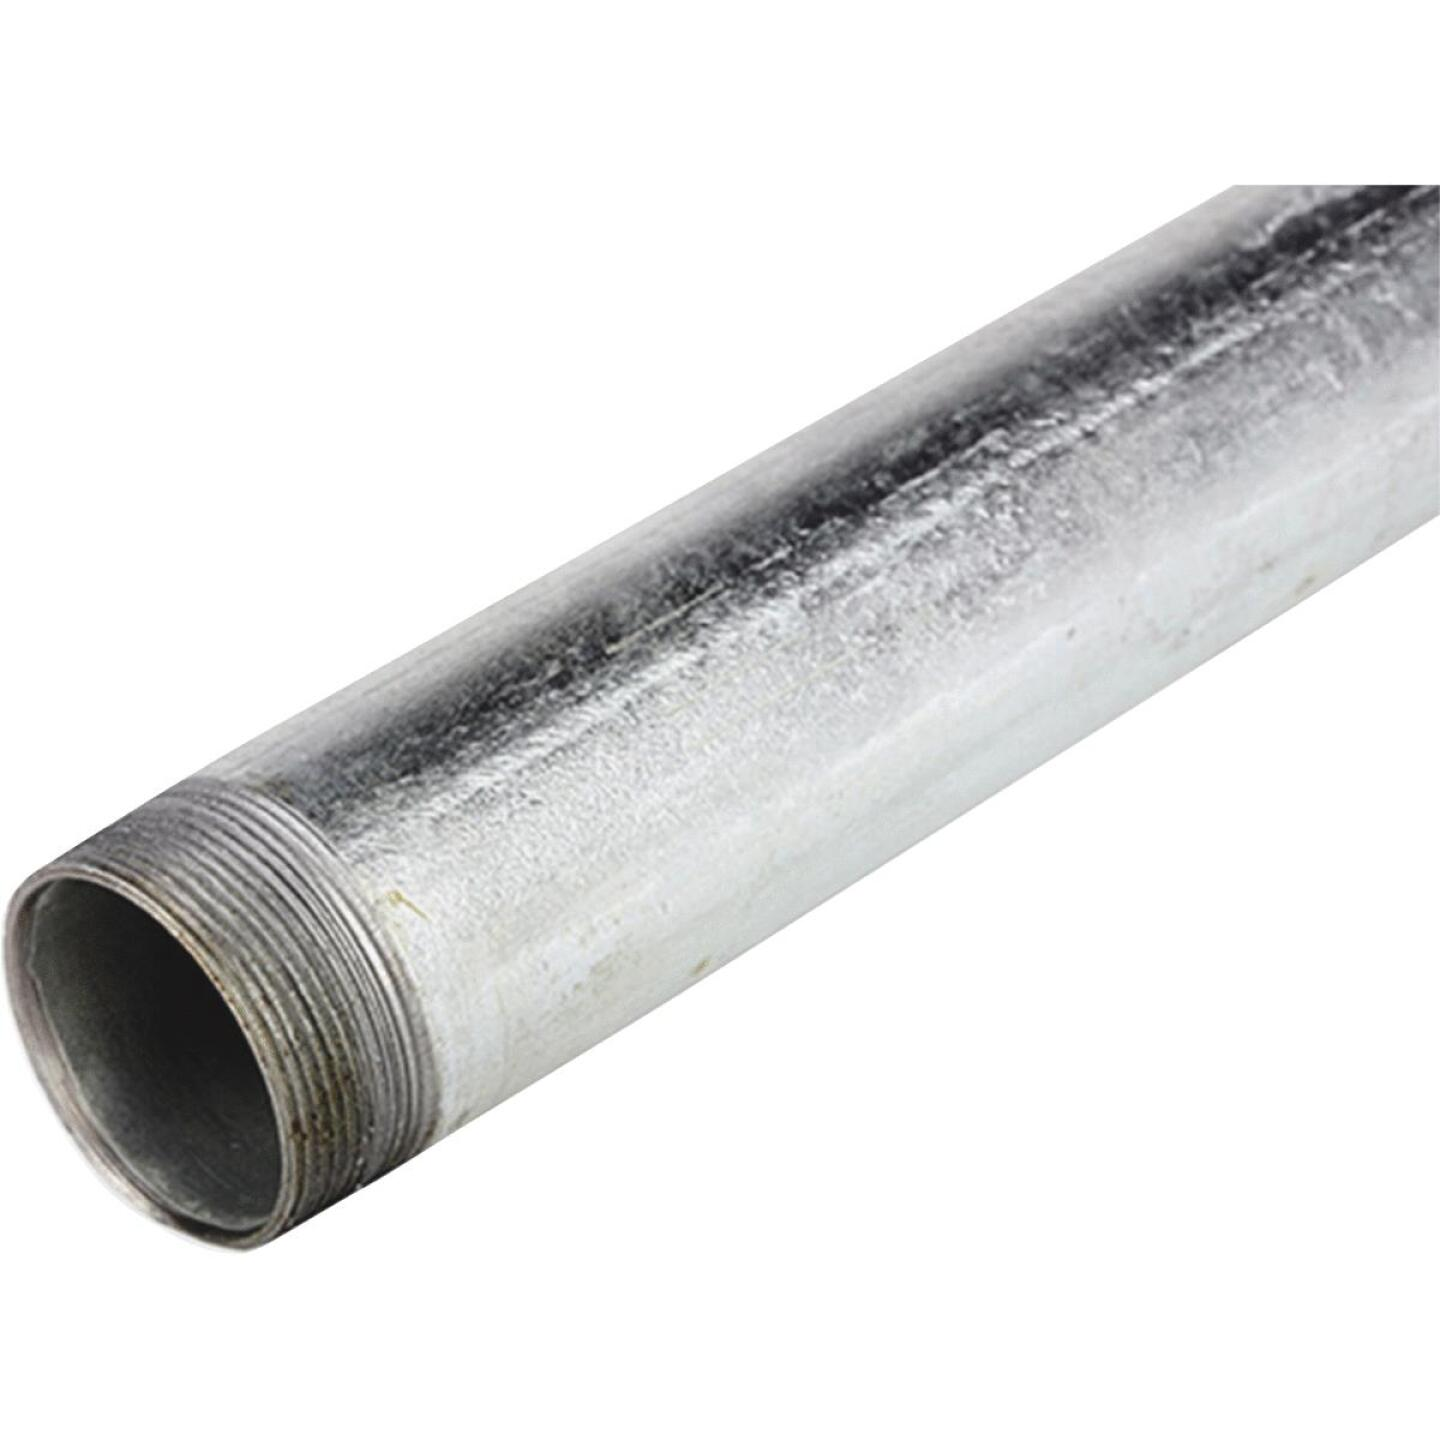 Southland  3/4 In. x 10 Ft. Rigid EMT Steel Conduit Image 1